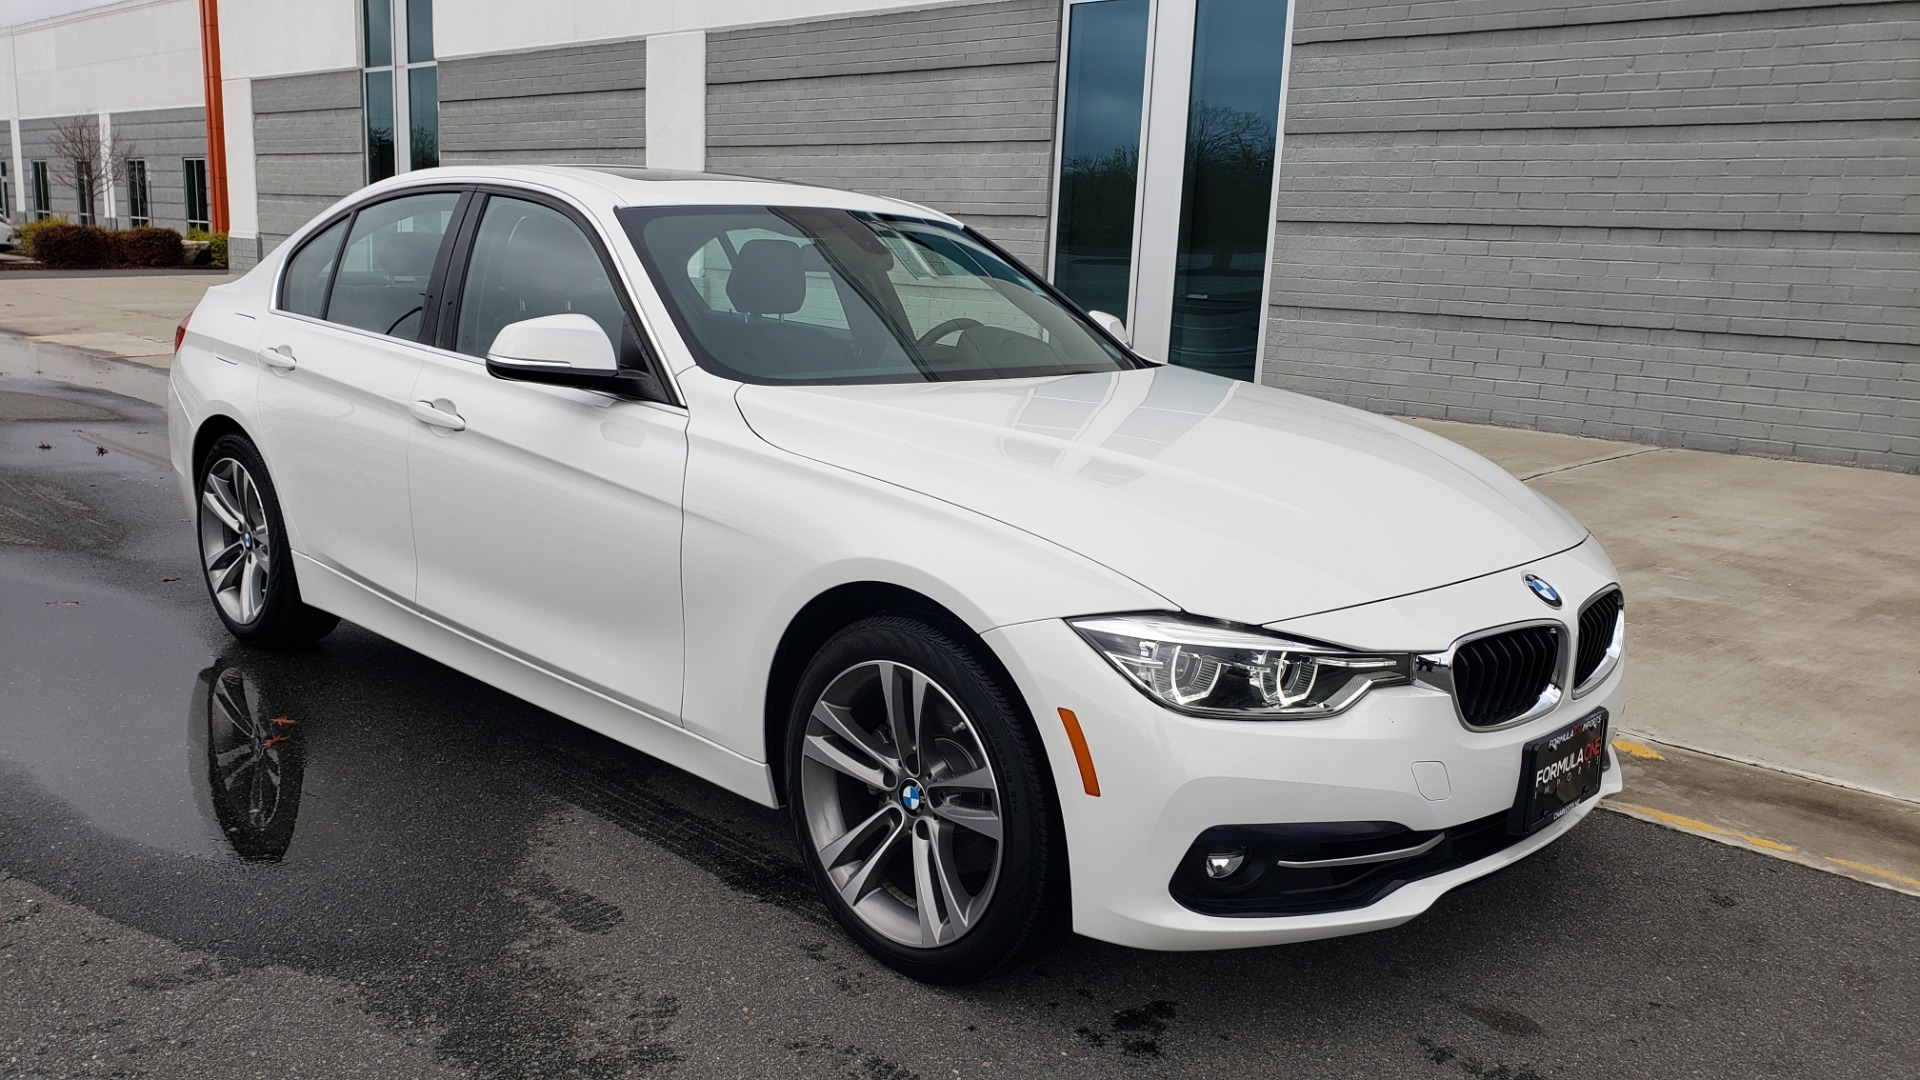 Used 2018 BMW 3 SERIES 330I XDRIVE / CONV PKG / SUNROOF / HTD STS / REARVIEW for sale $24,795 at Formula Imports in Charlotte NC 28227 2